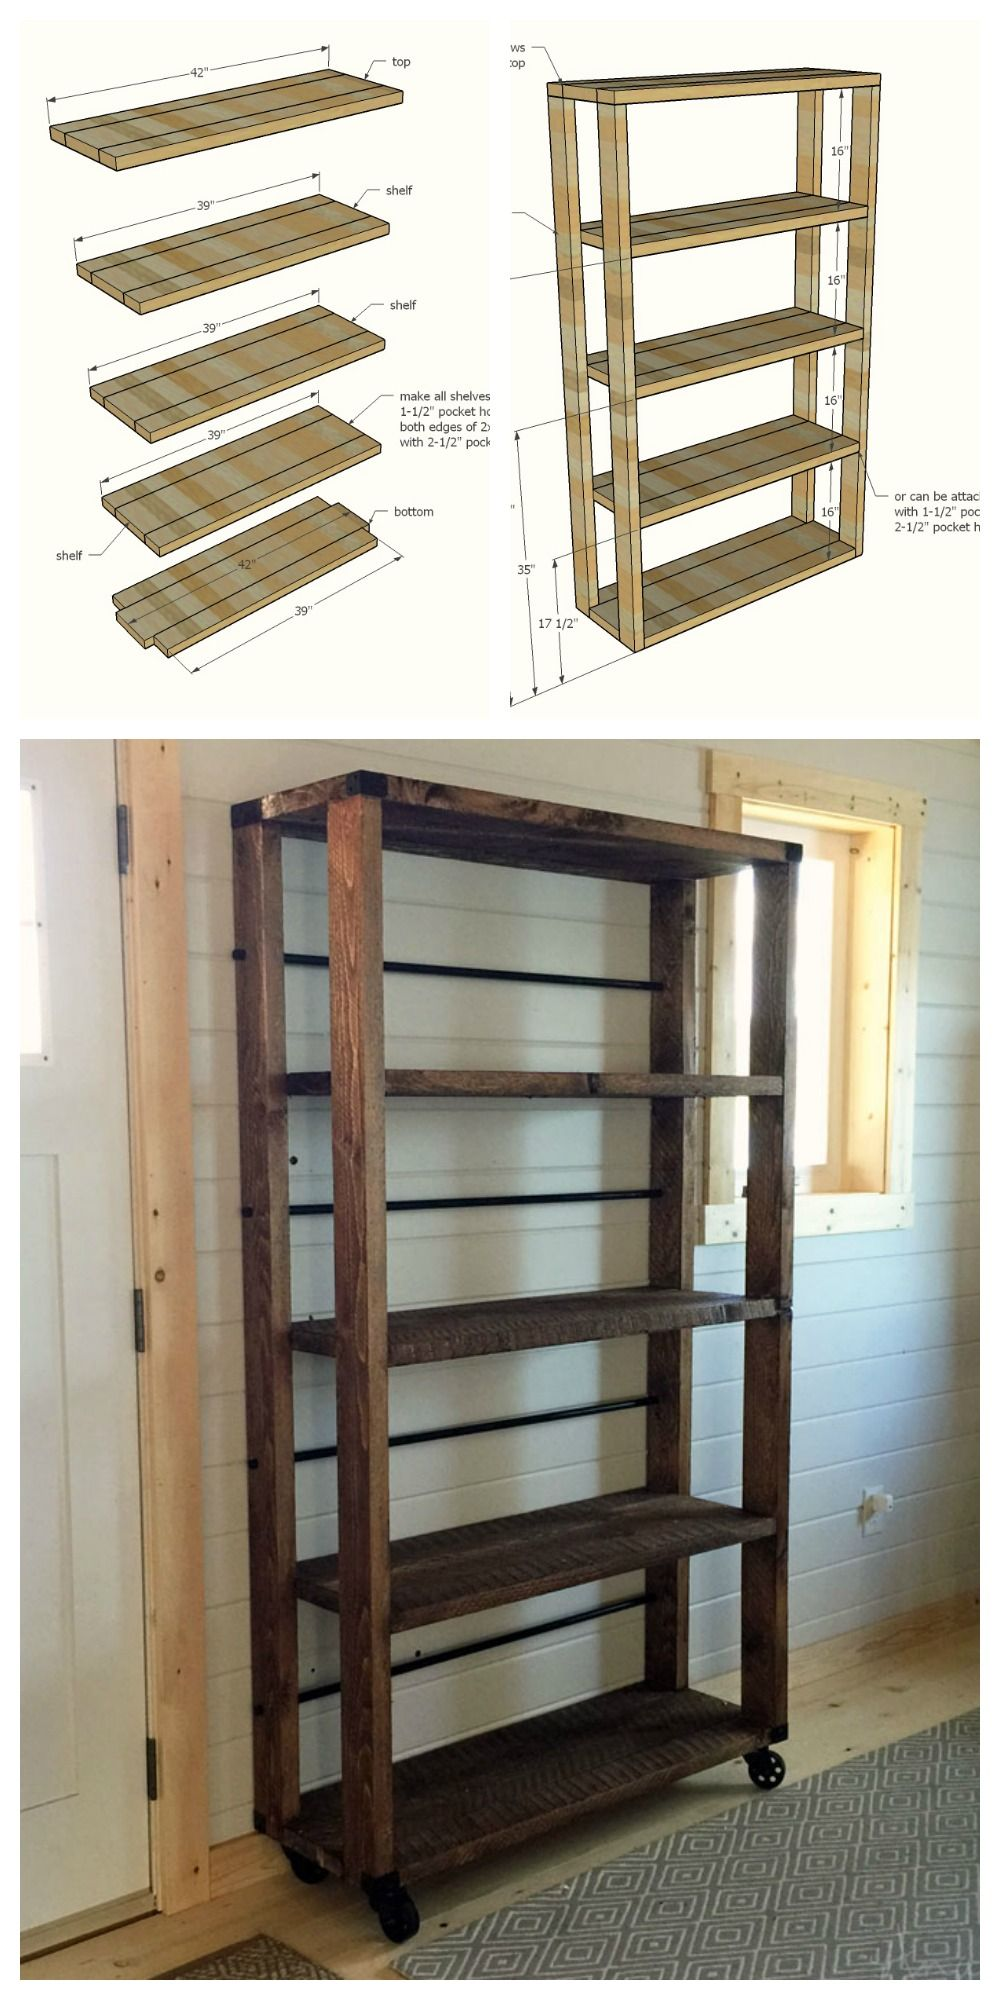 Ana White | Build a Reclaimed Wood Rolling Shelf | Free and Easy DIY  Project and - Ana White Build A Reclaimed Wood Rolling Shelf Free And Easy